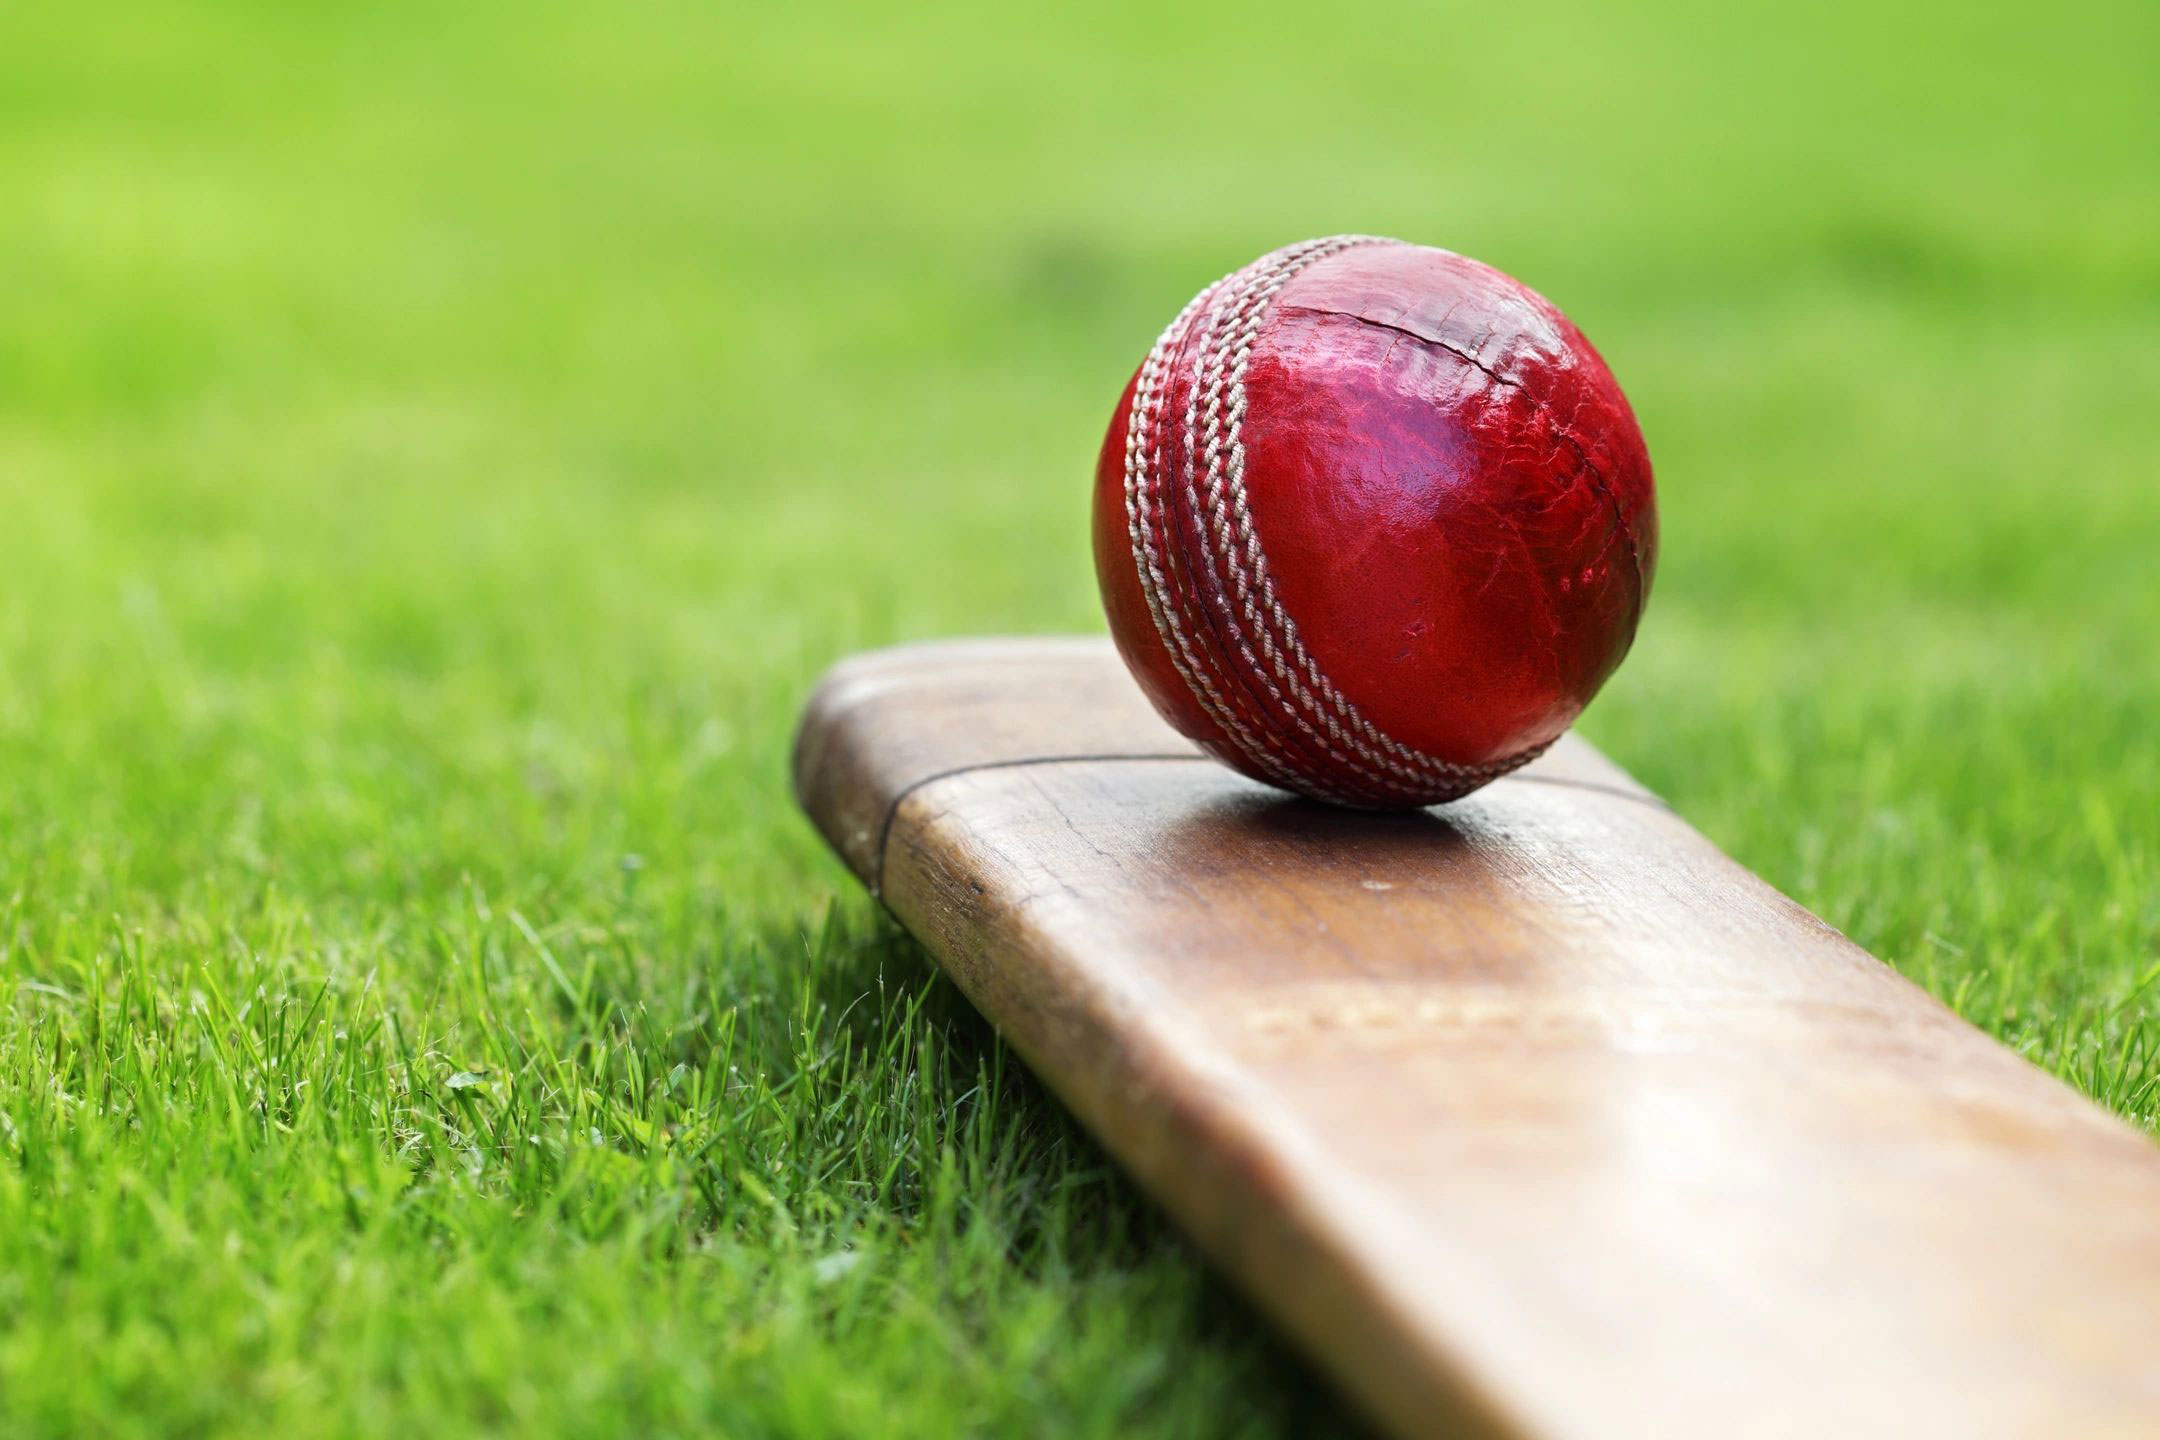 Cricket match - state excise department